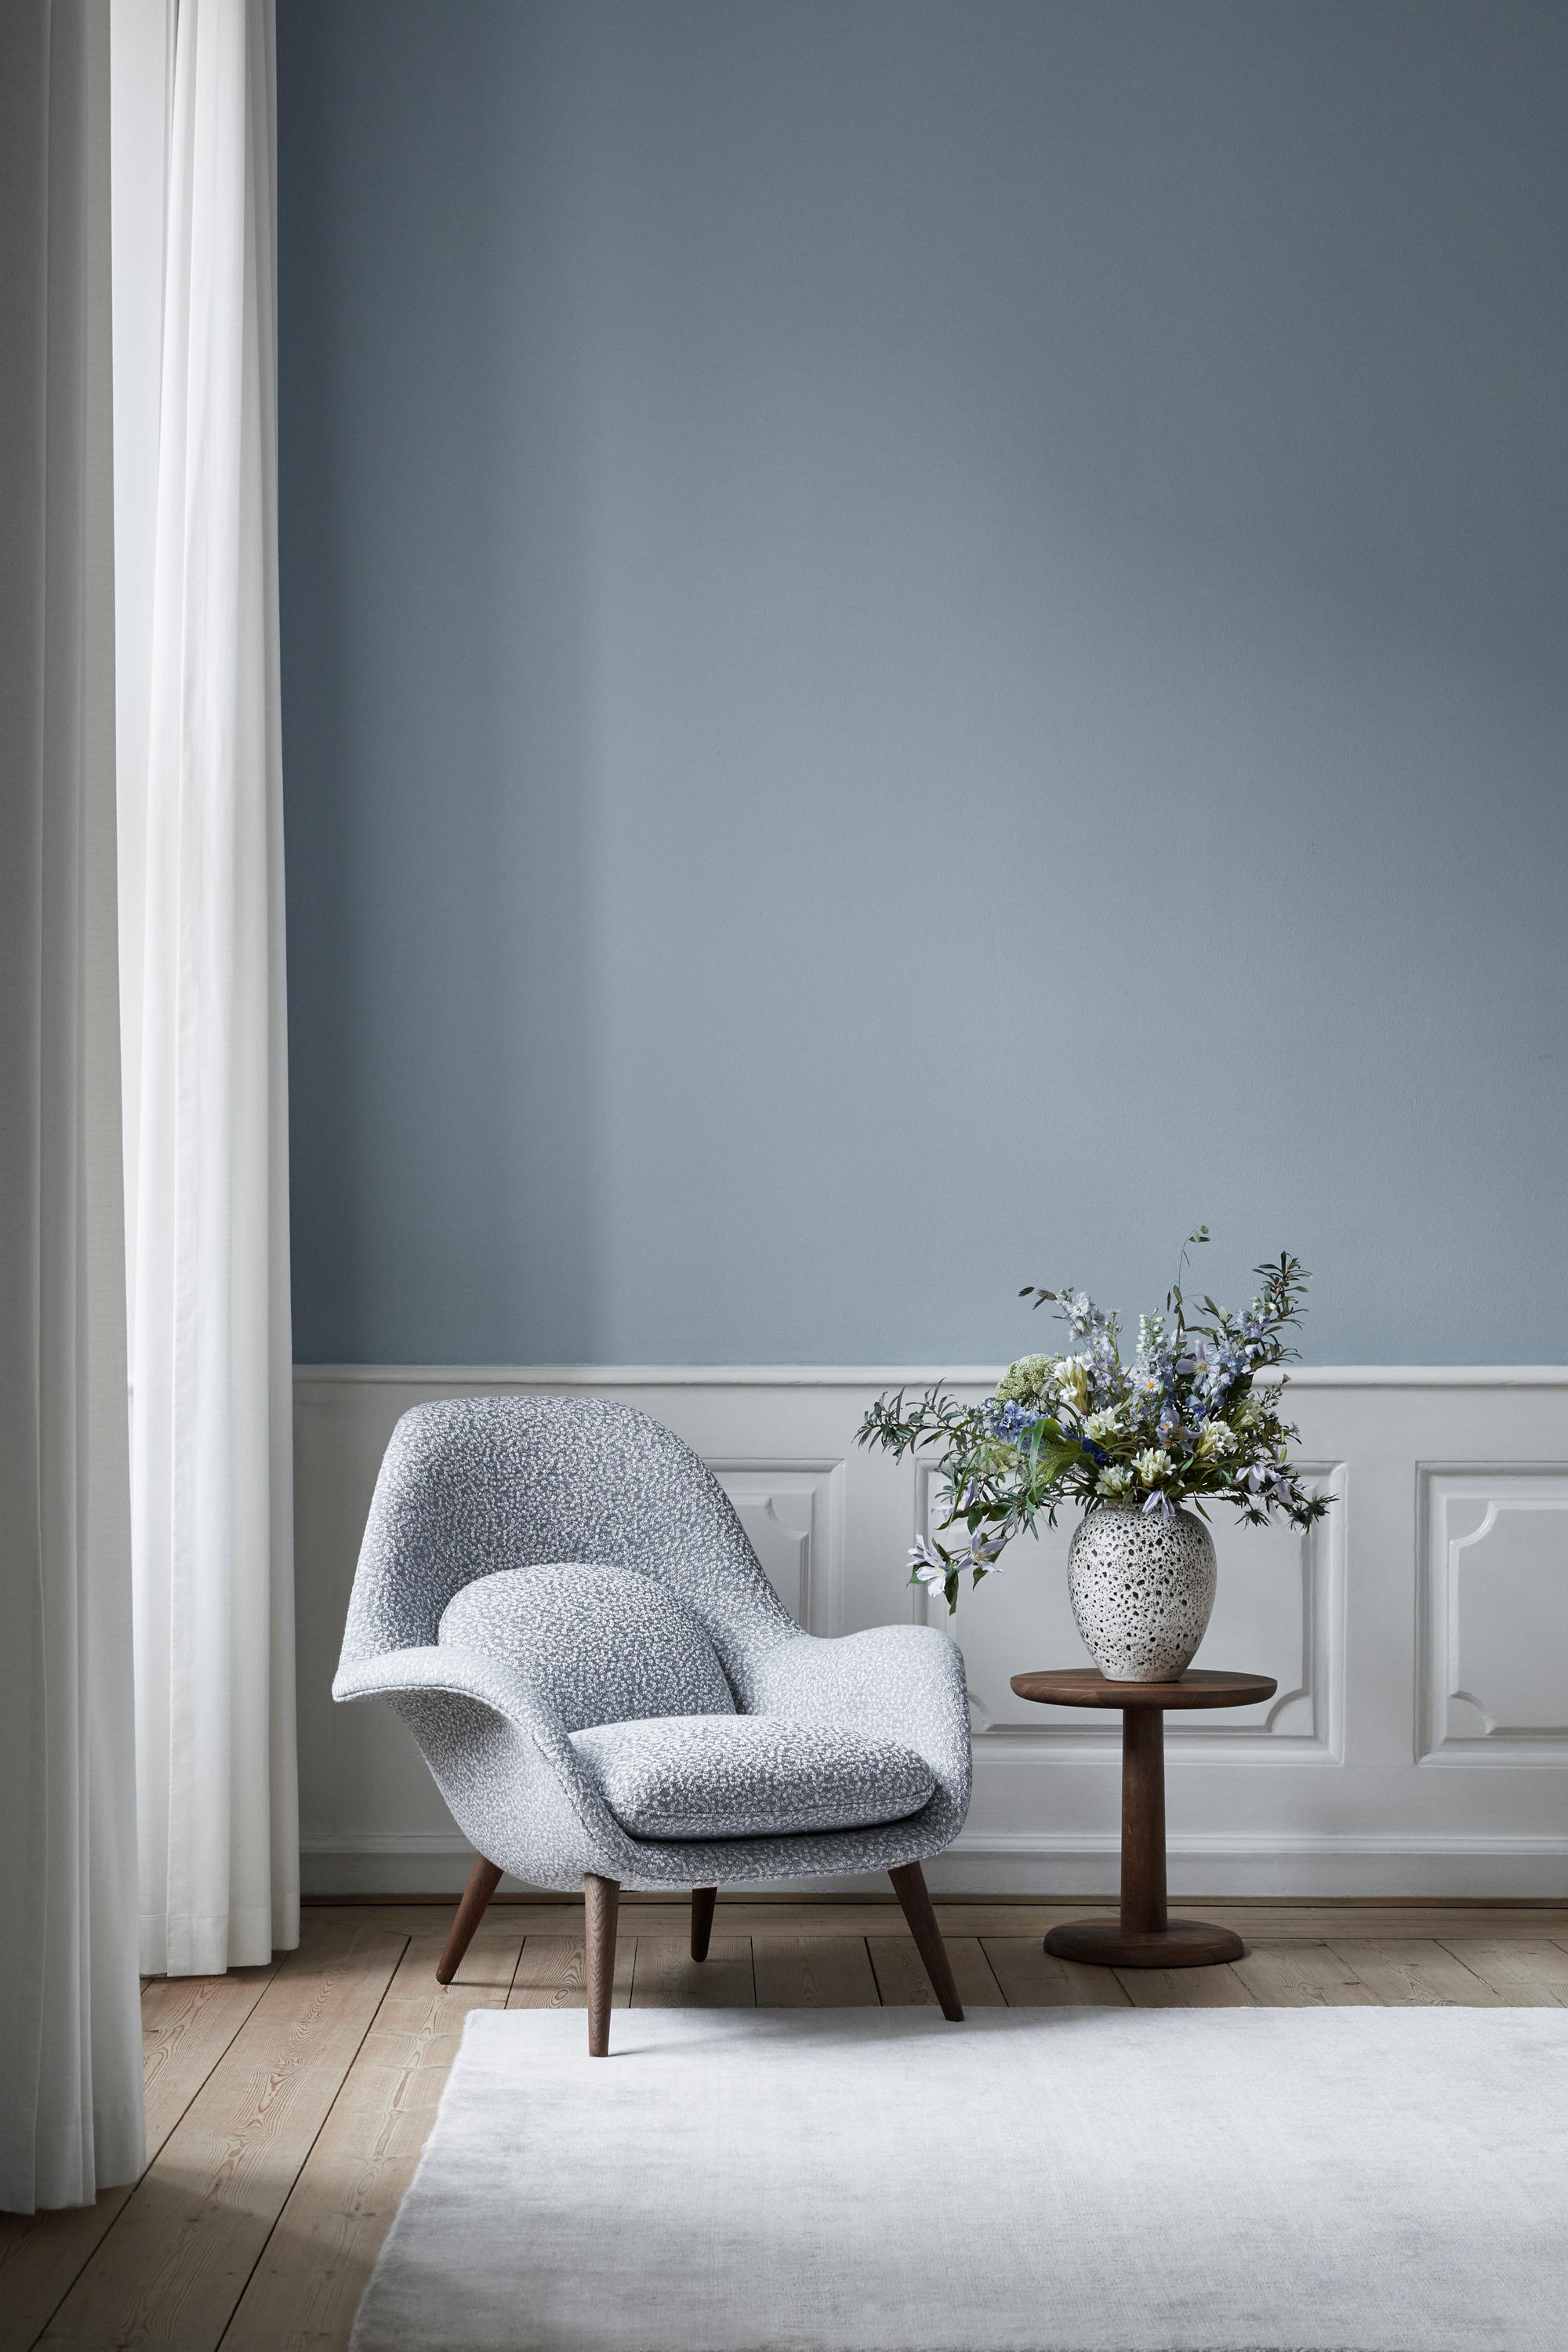 Swoon Chair Armchairs From Fredericia Furniture Architonic